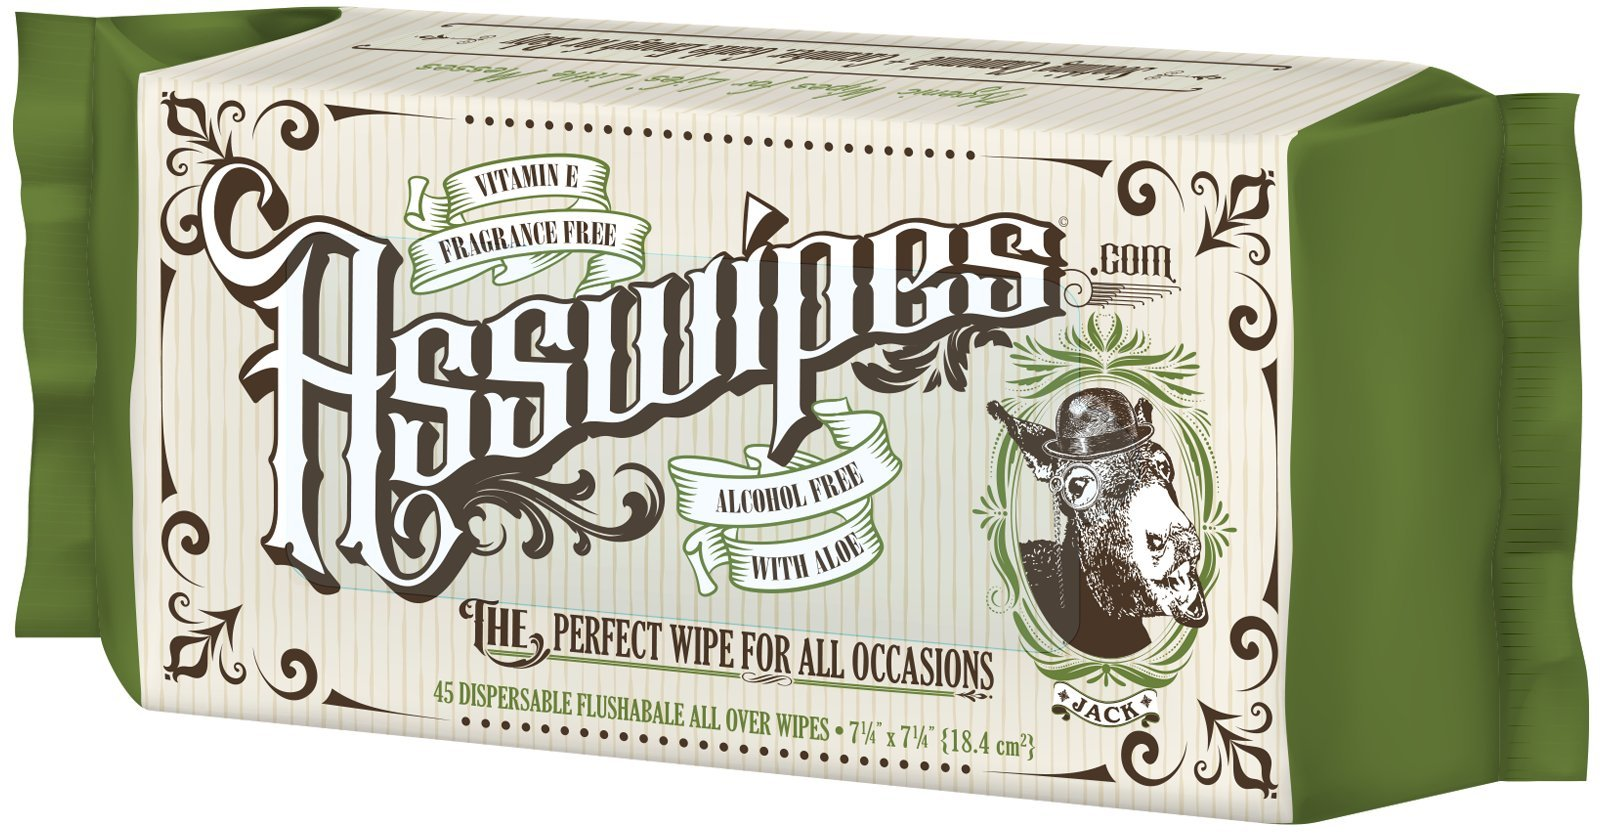 ASSWIPES Flushable Cleaning Hygiene Wipes with Aloe and Vitamin E! Made for Bathroom, Body, Baby, Feet and Face! Alcohol, Paraben, and Fragrance FREE for Sensitive Skin! (1 Pack)